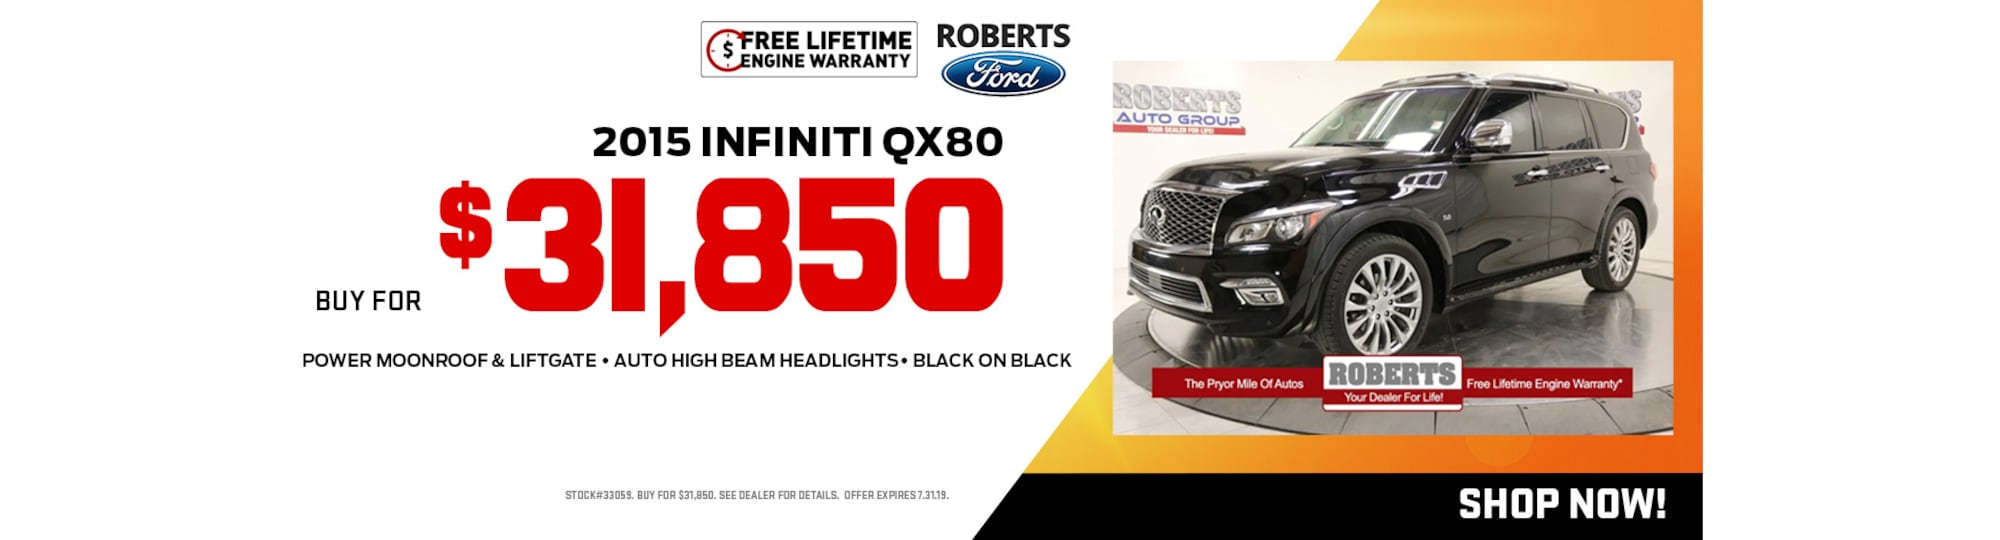 Roberts Auto Group >> Roberts Ford Lincoln Ford Dealership In Pryor Ok